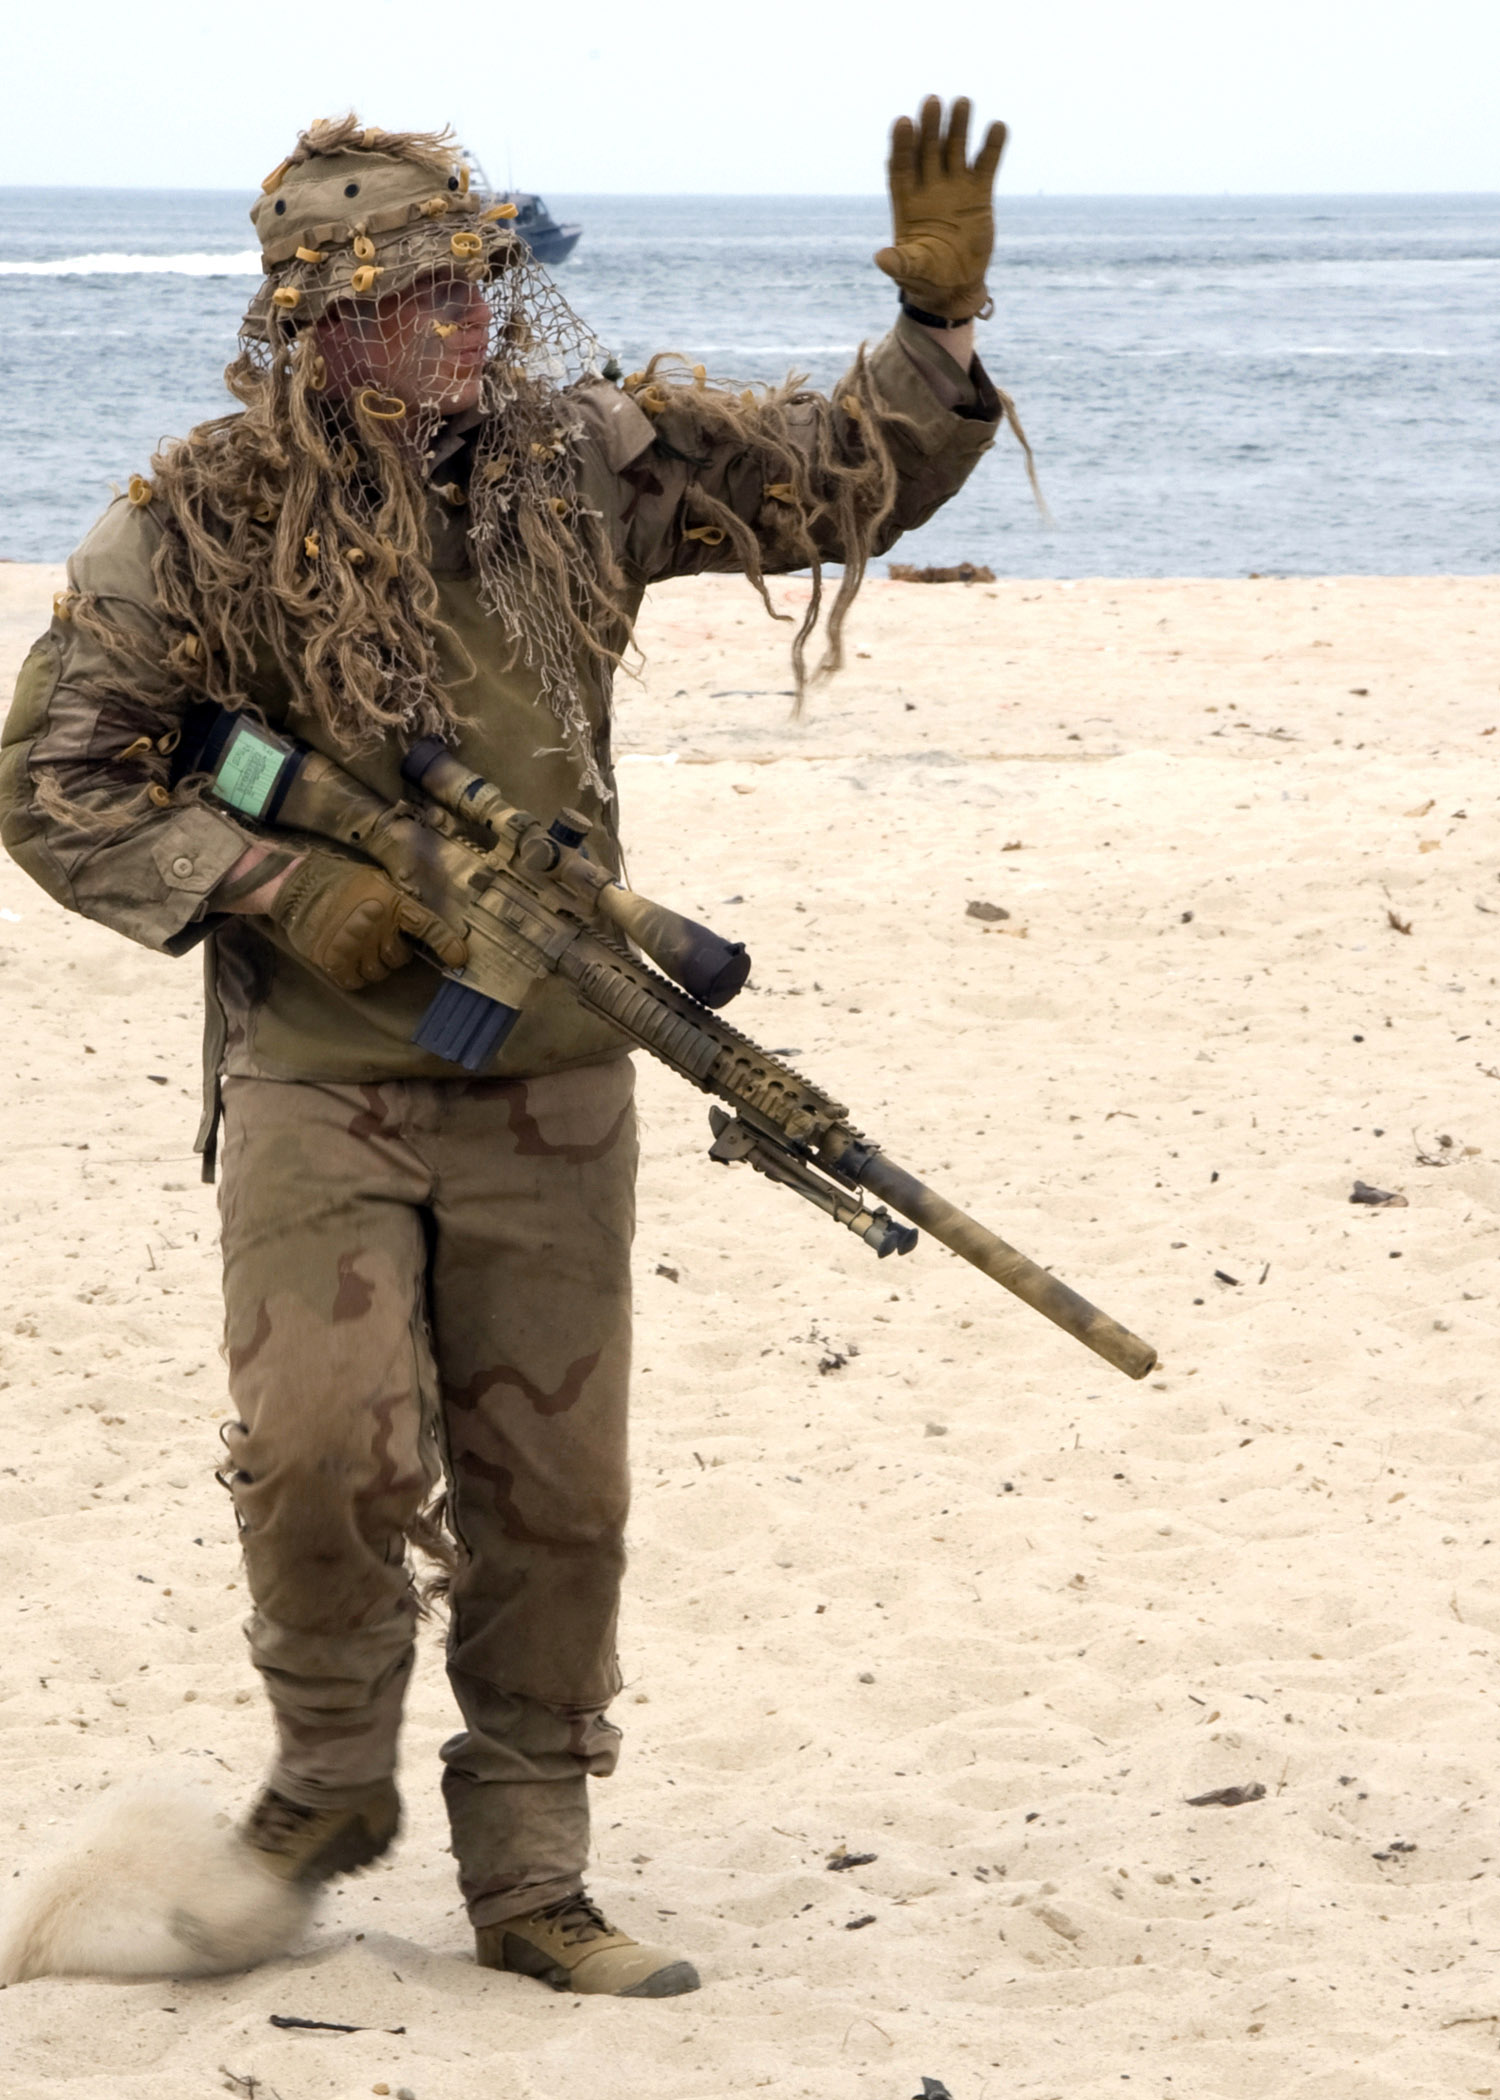 Fileus navy 100717 n 0683t 292 a us navy seal sniper waves to fileus navy 100717 n 0683t 292 a us navy seal sniper sciox Choice Image